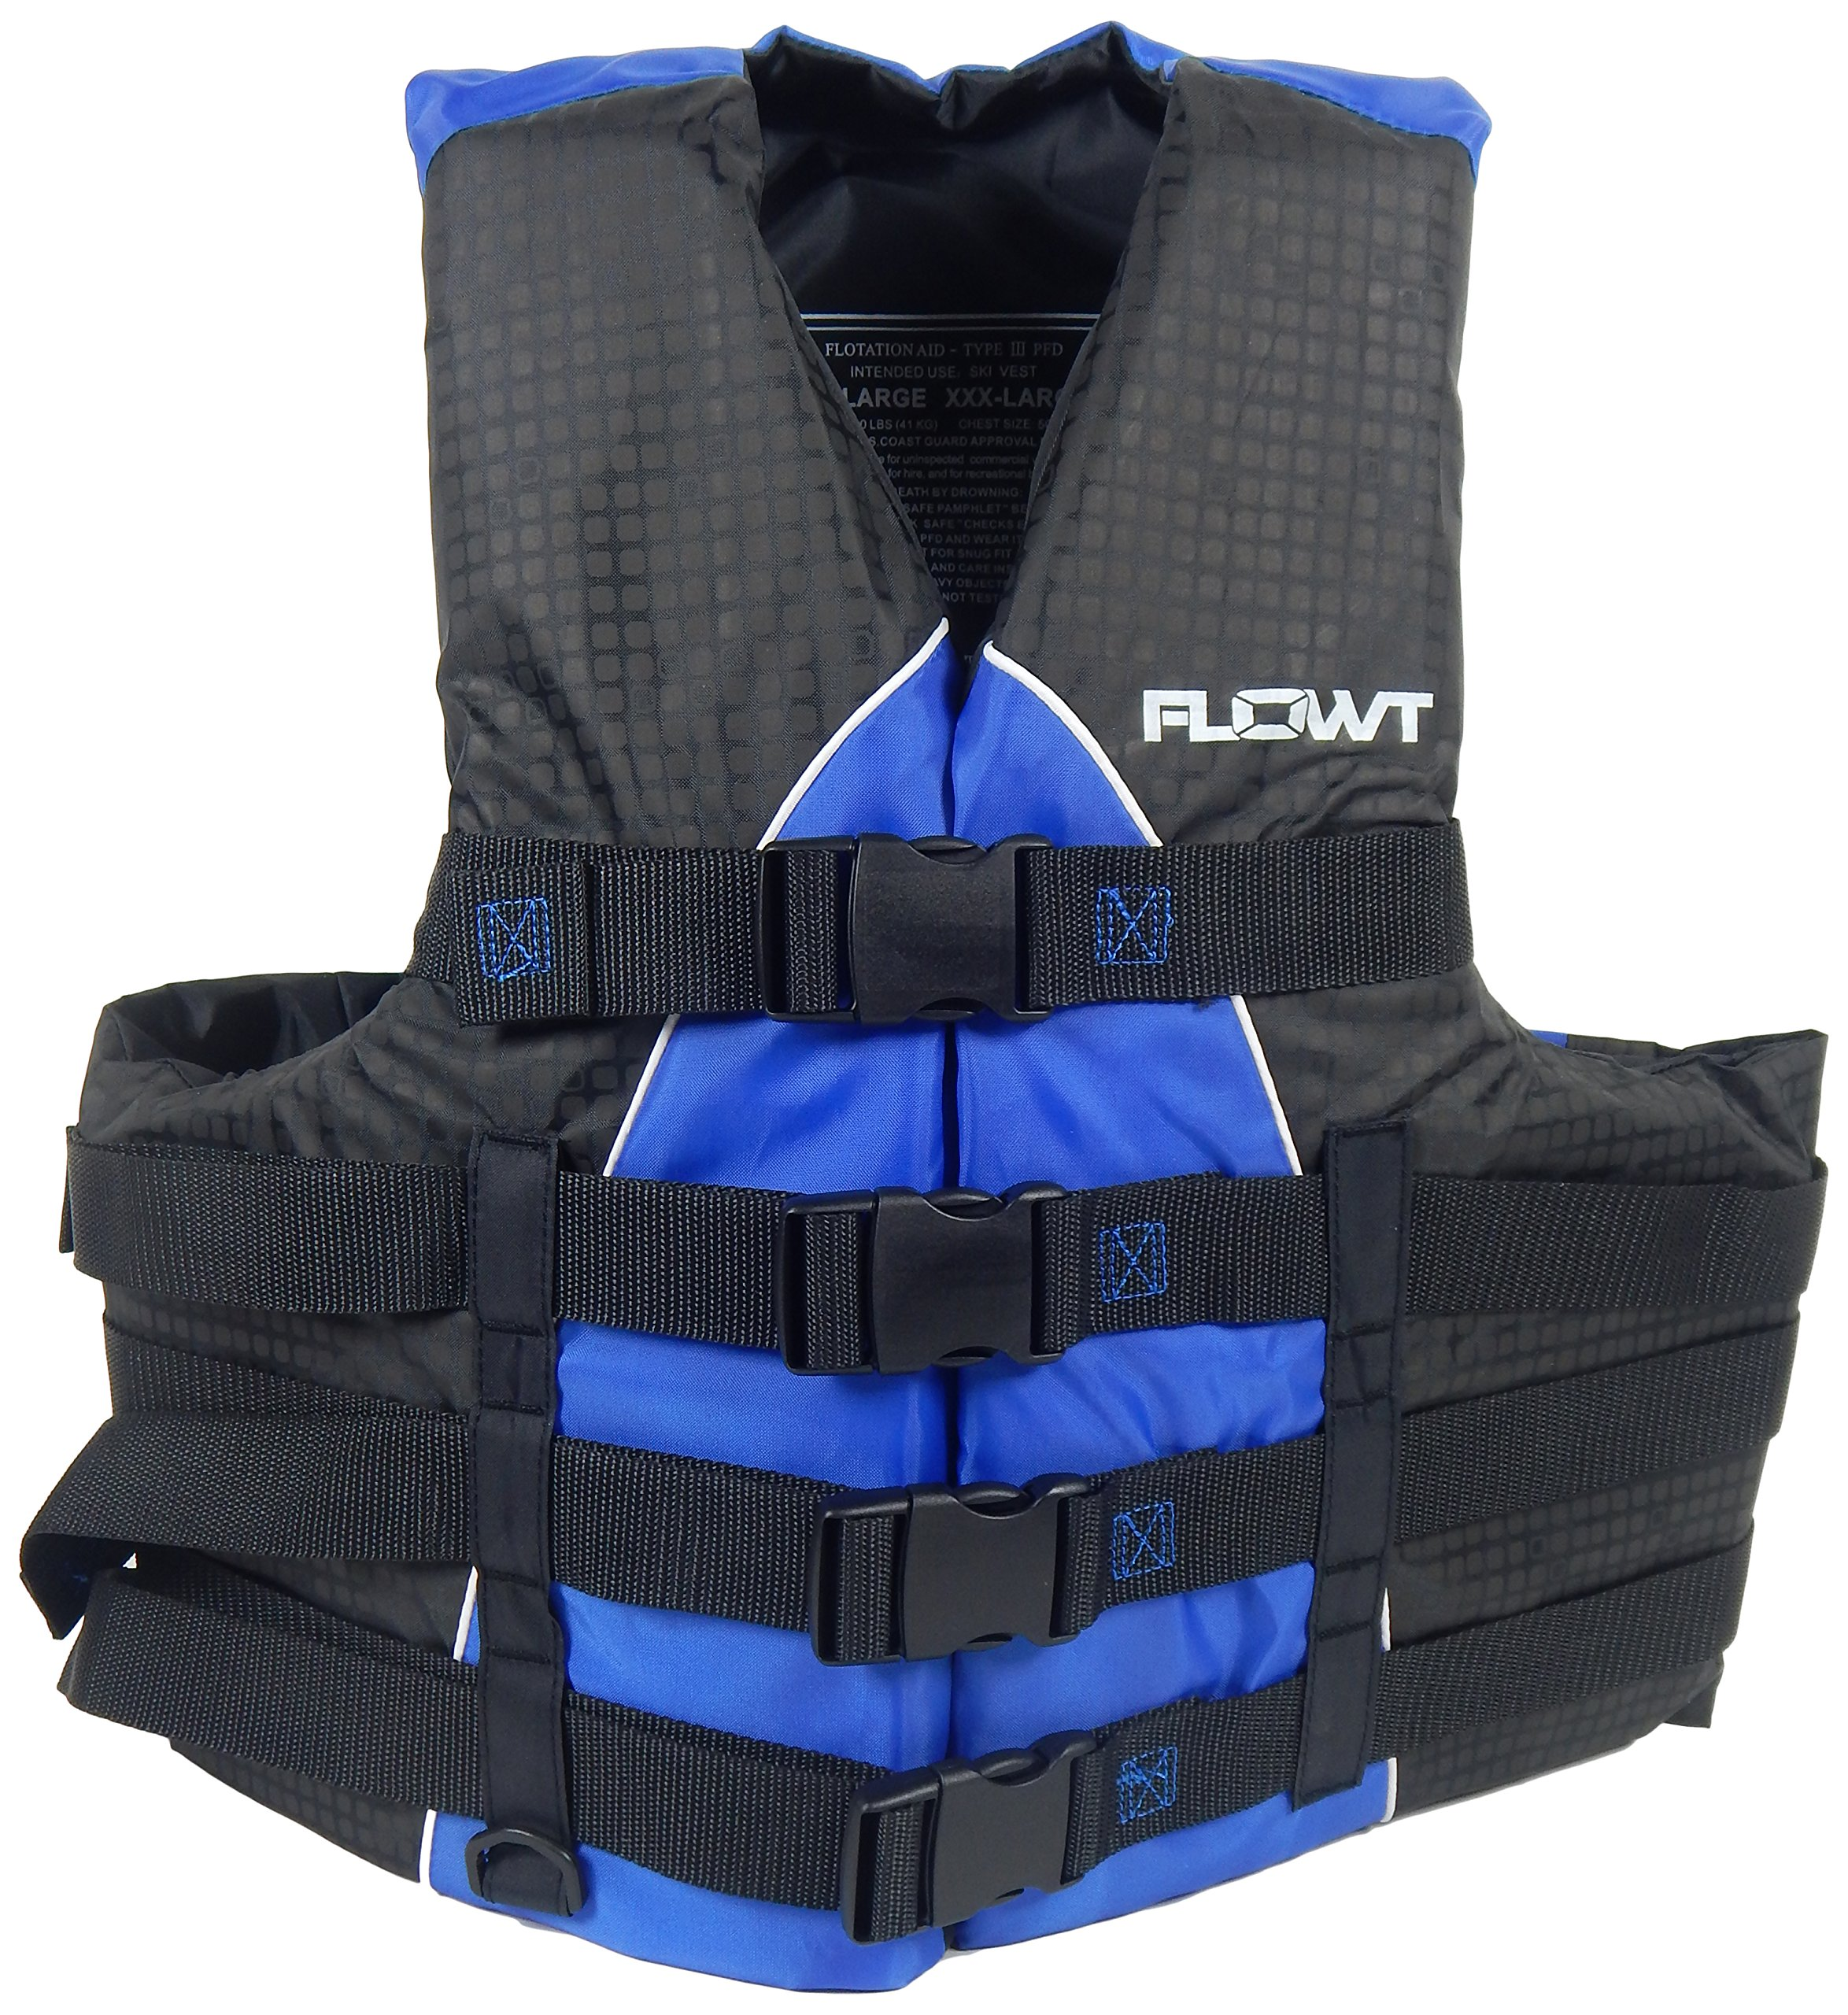 Flowt 40401-2-L/XL Extreme Sport Life Vest, Type III PFD, Closed Sides, Blue, Large/Extra Large, Fits Chest Sizes 40'' - 50'' by Flowt